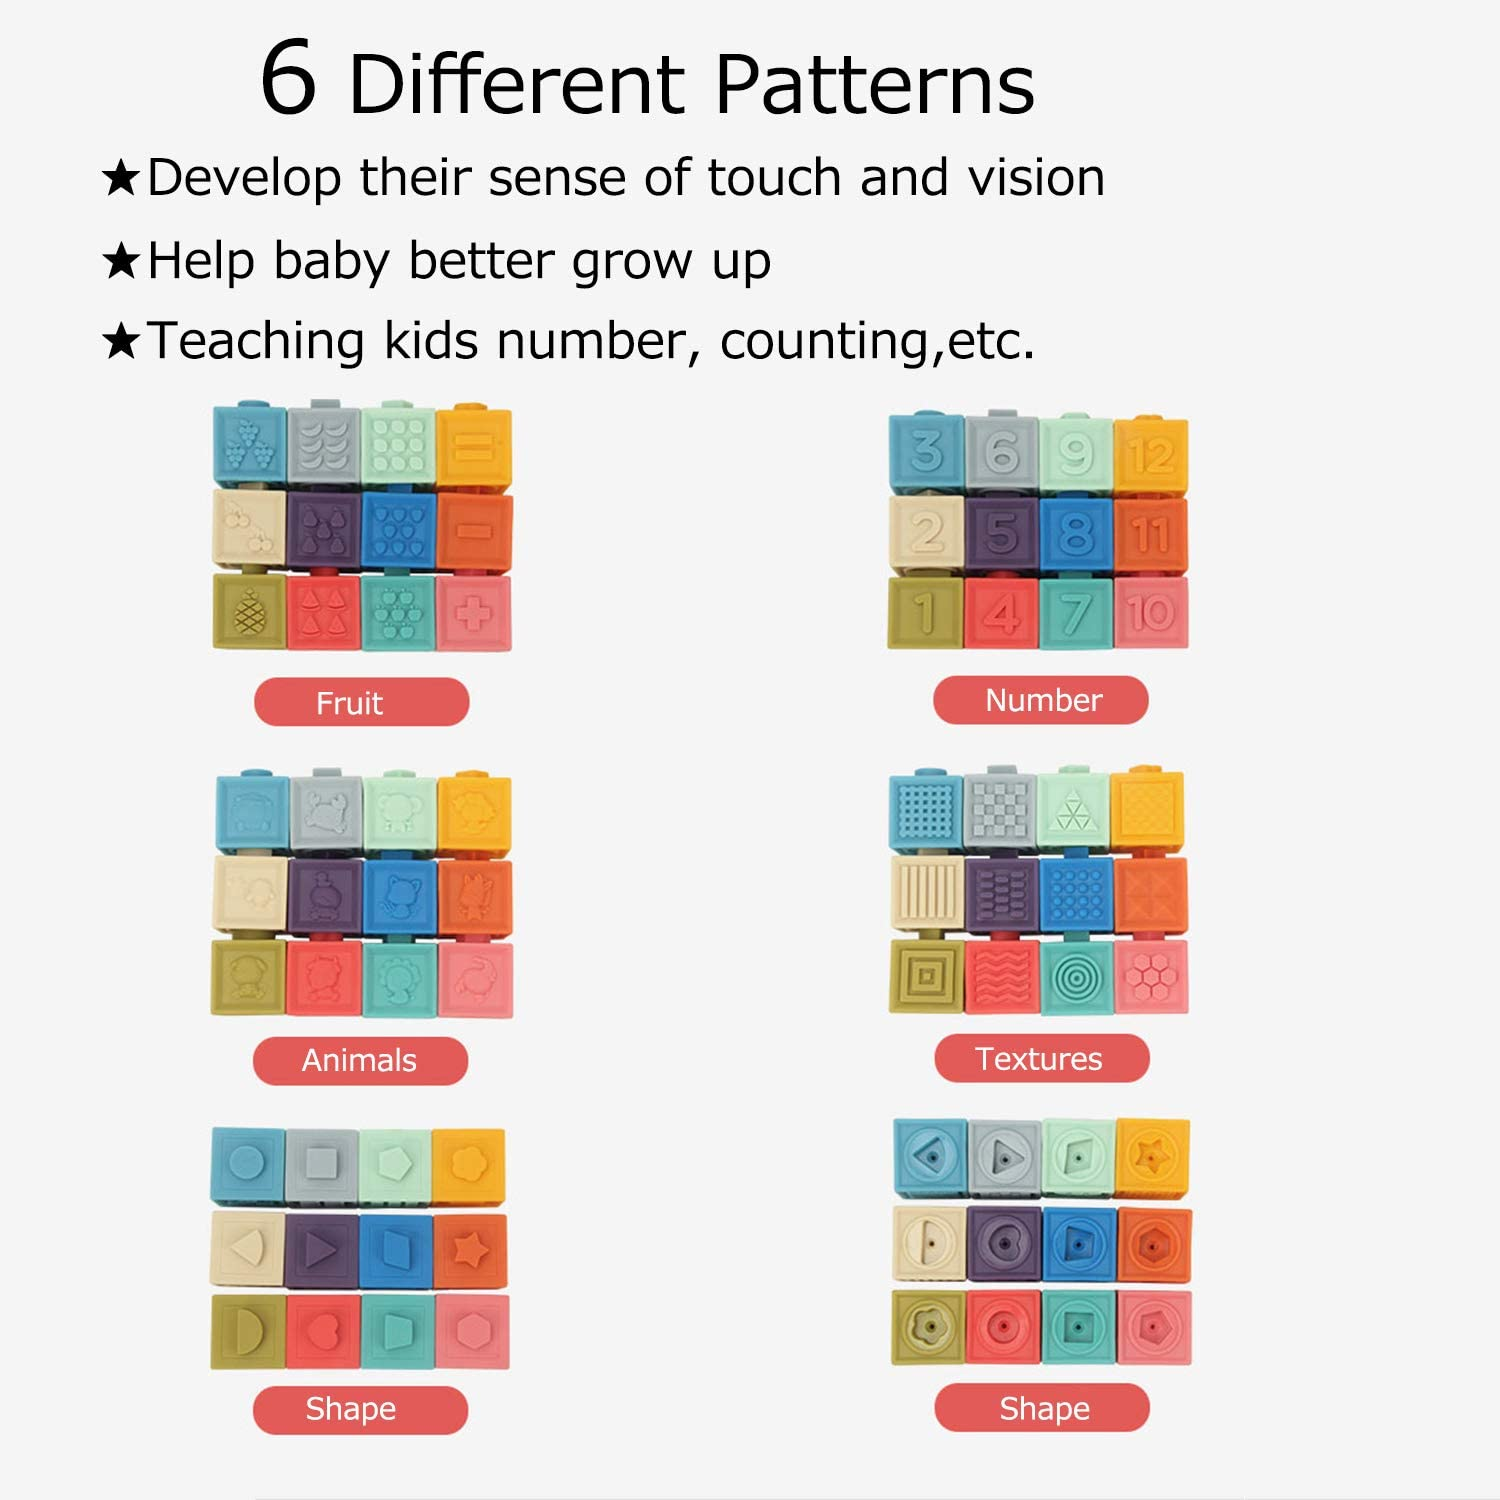 Educational Baby Toys with 6 Different Patterns 12 PCS Soft Building Blocks for Toddlers Winfavor Baby Blocks Animals, Shapes, Fruits, Textures, Numbers for Babies Toddlers Boys /& Girls